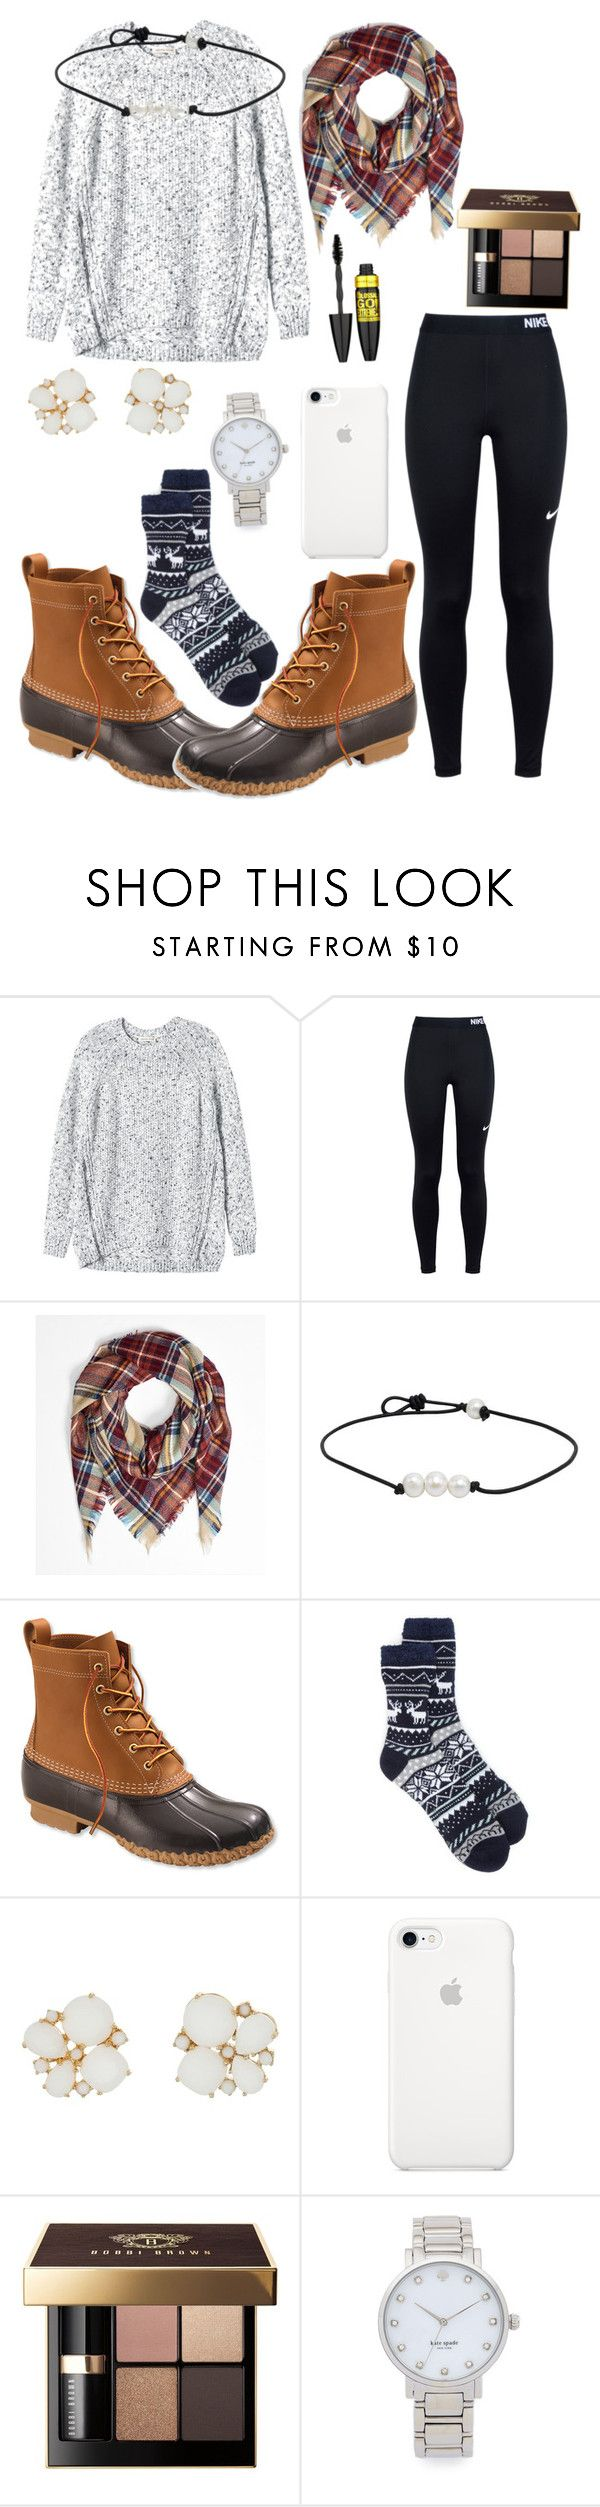 """""""Untitled #45"""" by kaoriroberts ❤ liked on Polyvore featuring Rebecca Taylor, NIKE, L.L.Bean, New Directions, Kate Spade, Bobbi Brown Cosmetics and Maybelline"""